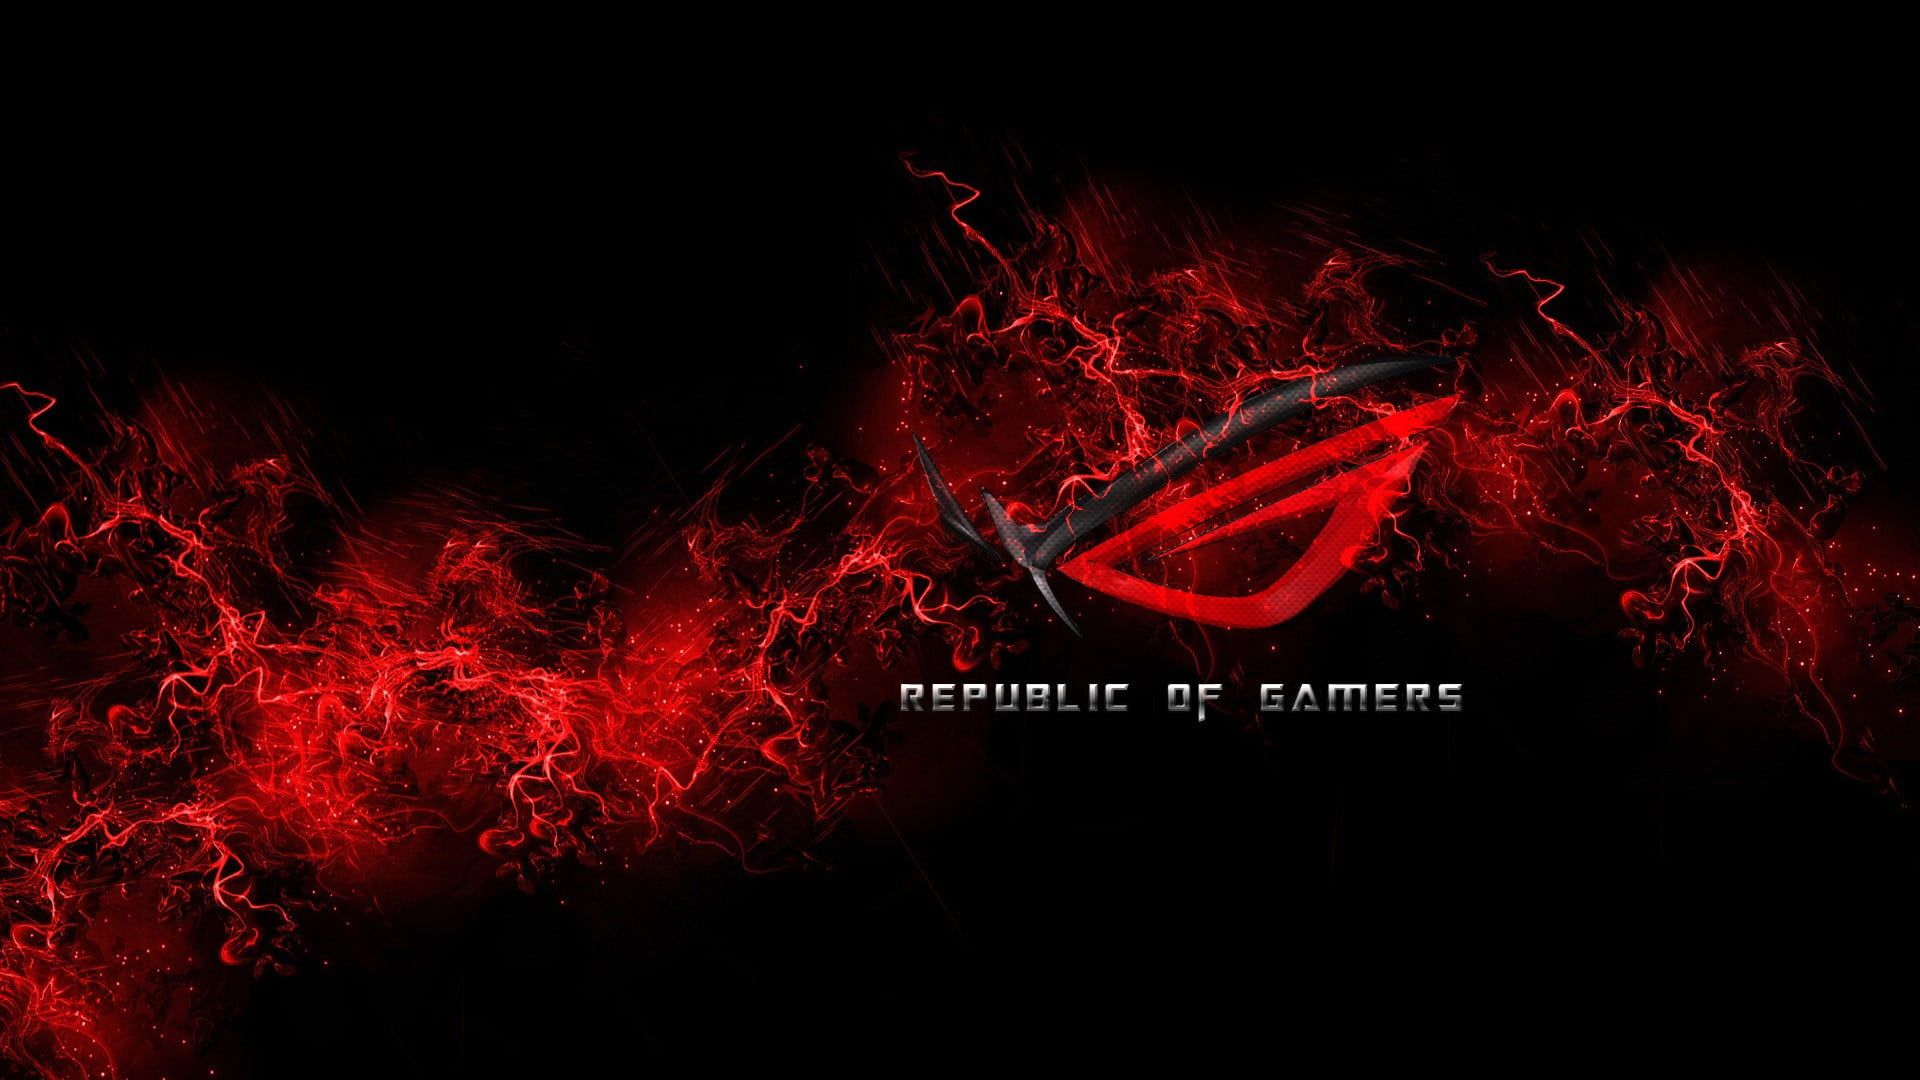 Black And Red Free Wallpapers 2315 Hd Wallpapers Site Black And Red Geometric Shapes Black Backgrounds